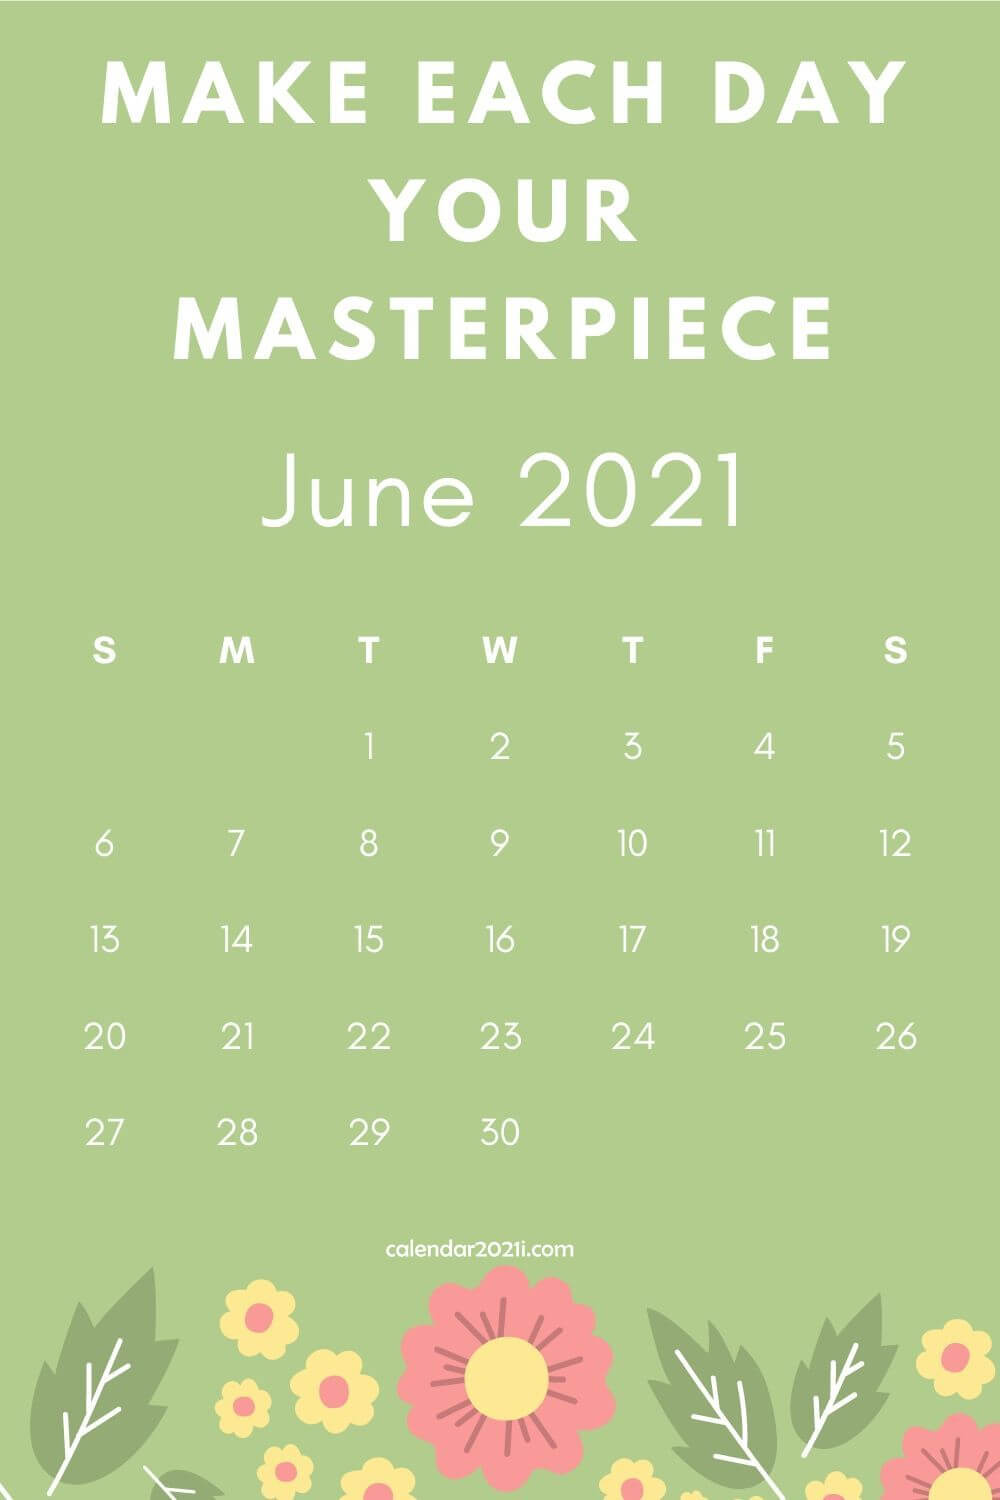 Inspiring June 2021 Calendar with Quotes